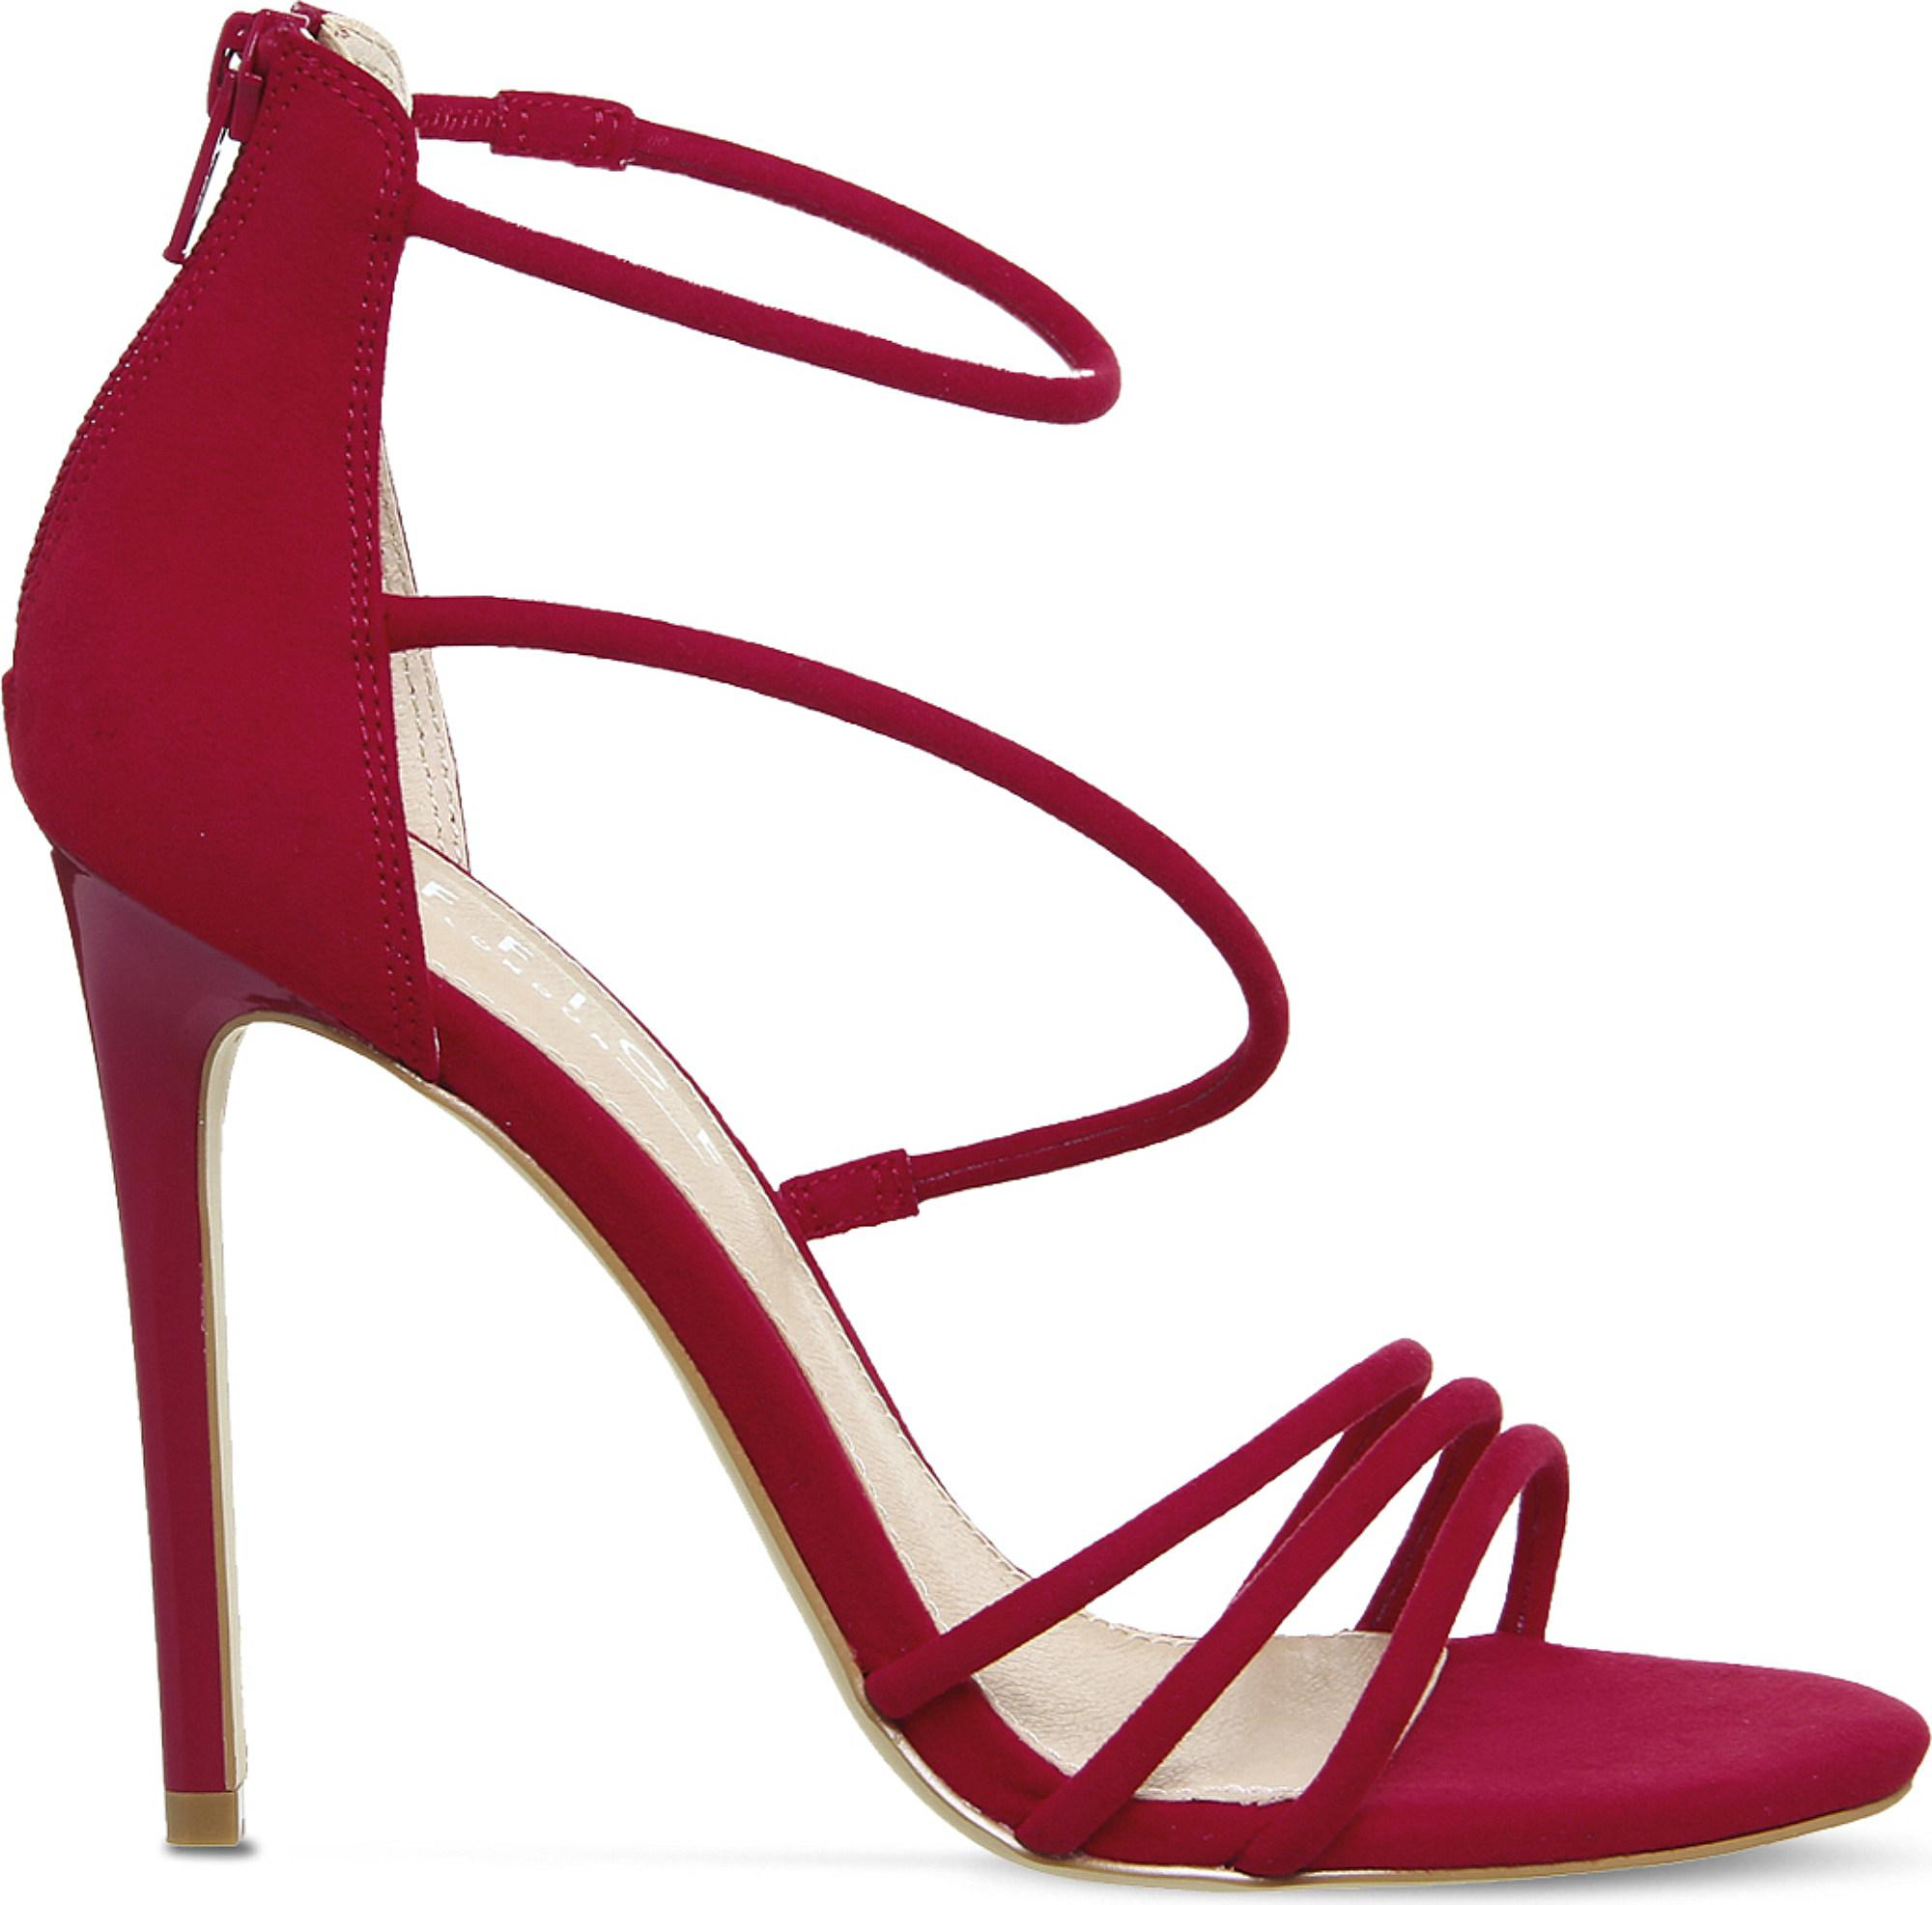 Harness Heeled Sandals - Red Office 92xxhHK